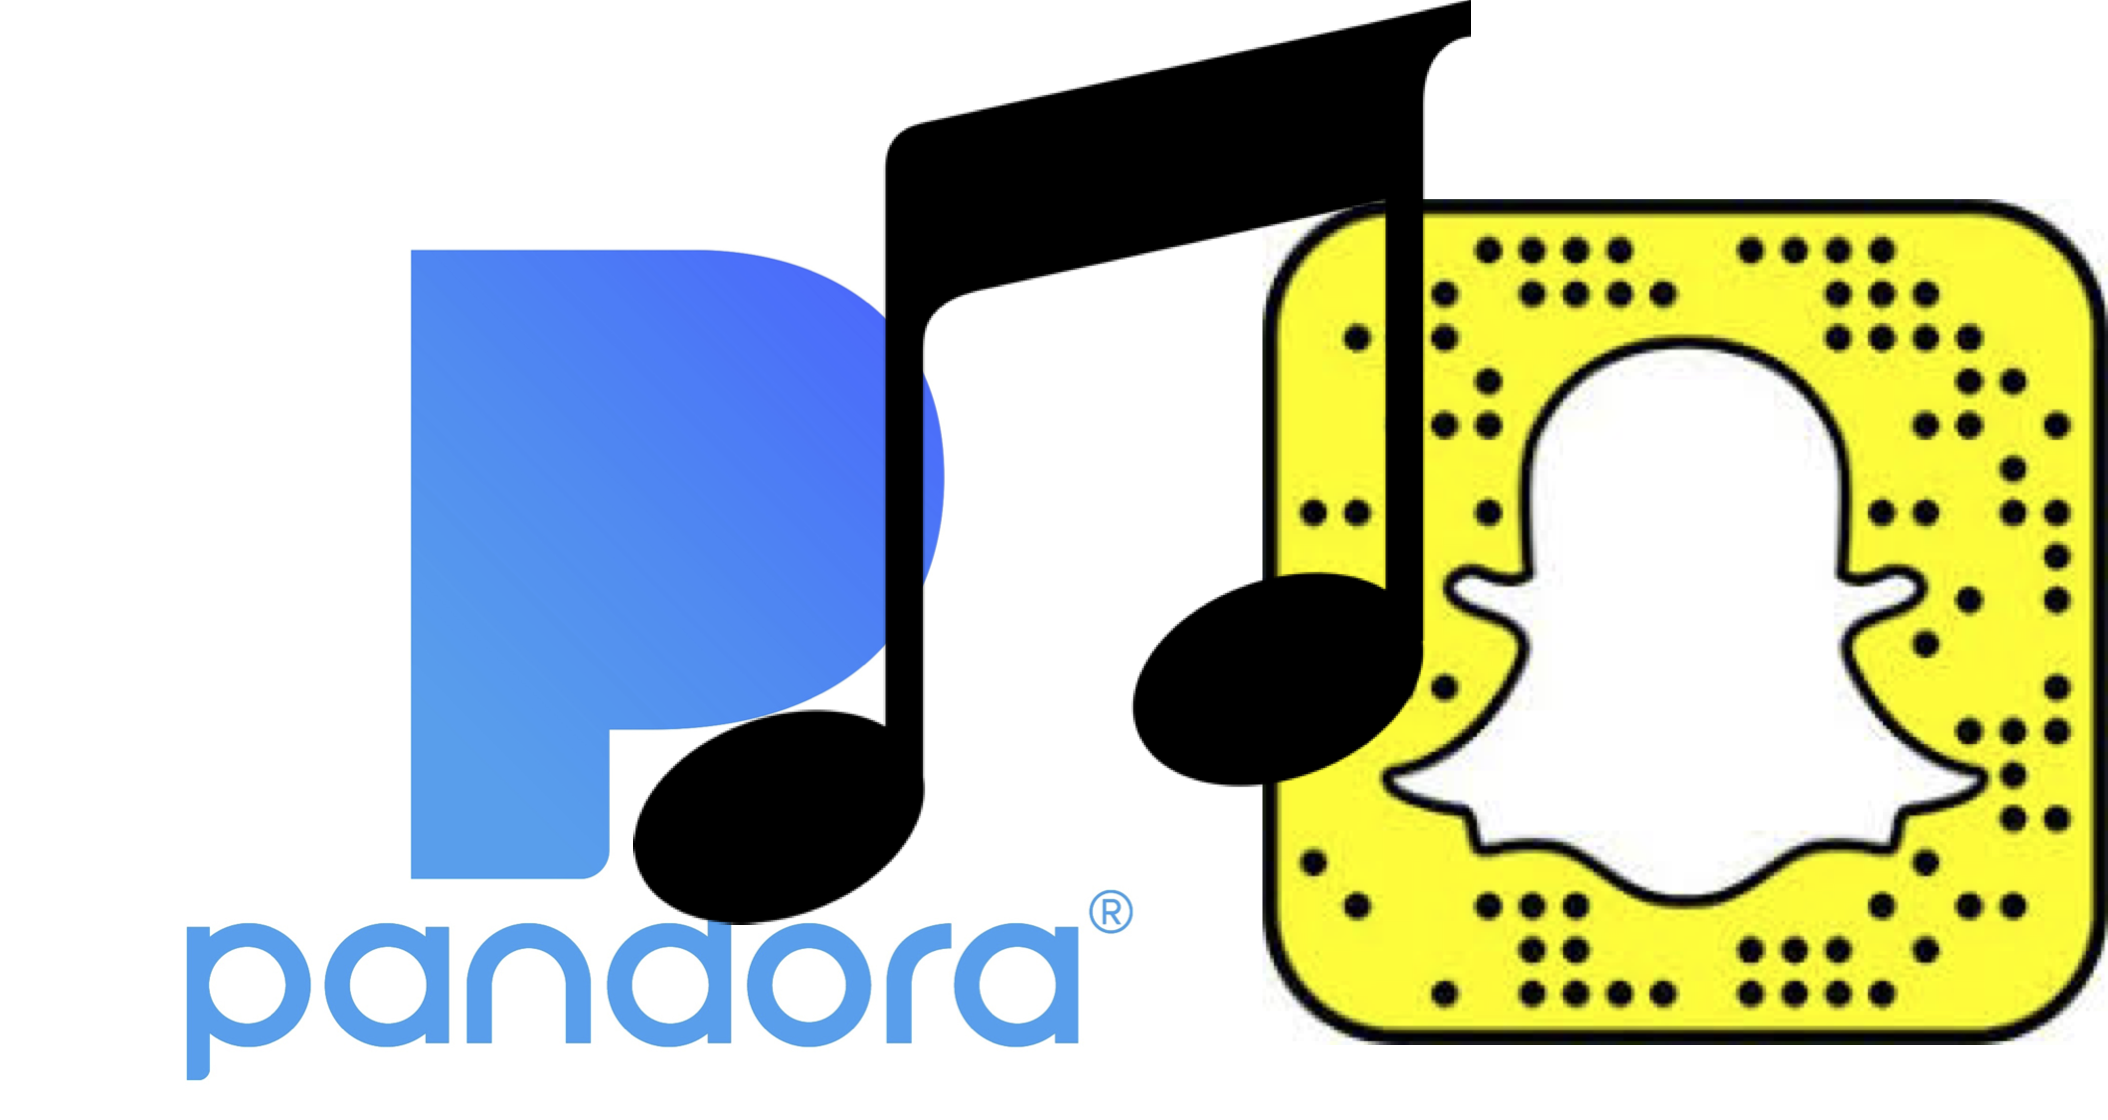 Cover image for Quick Take: Pandora and Snapchat Take a Swipe at Facebook